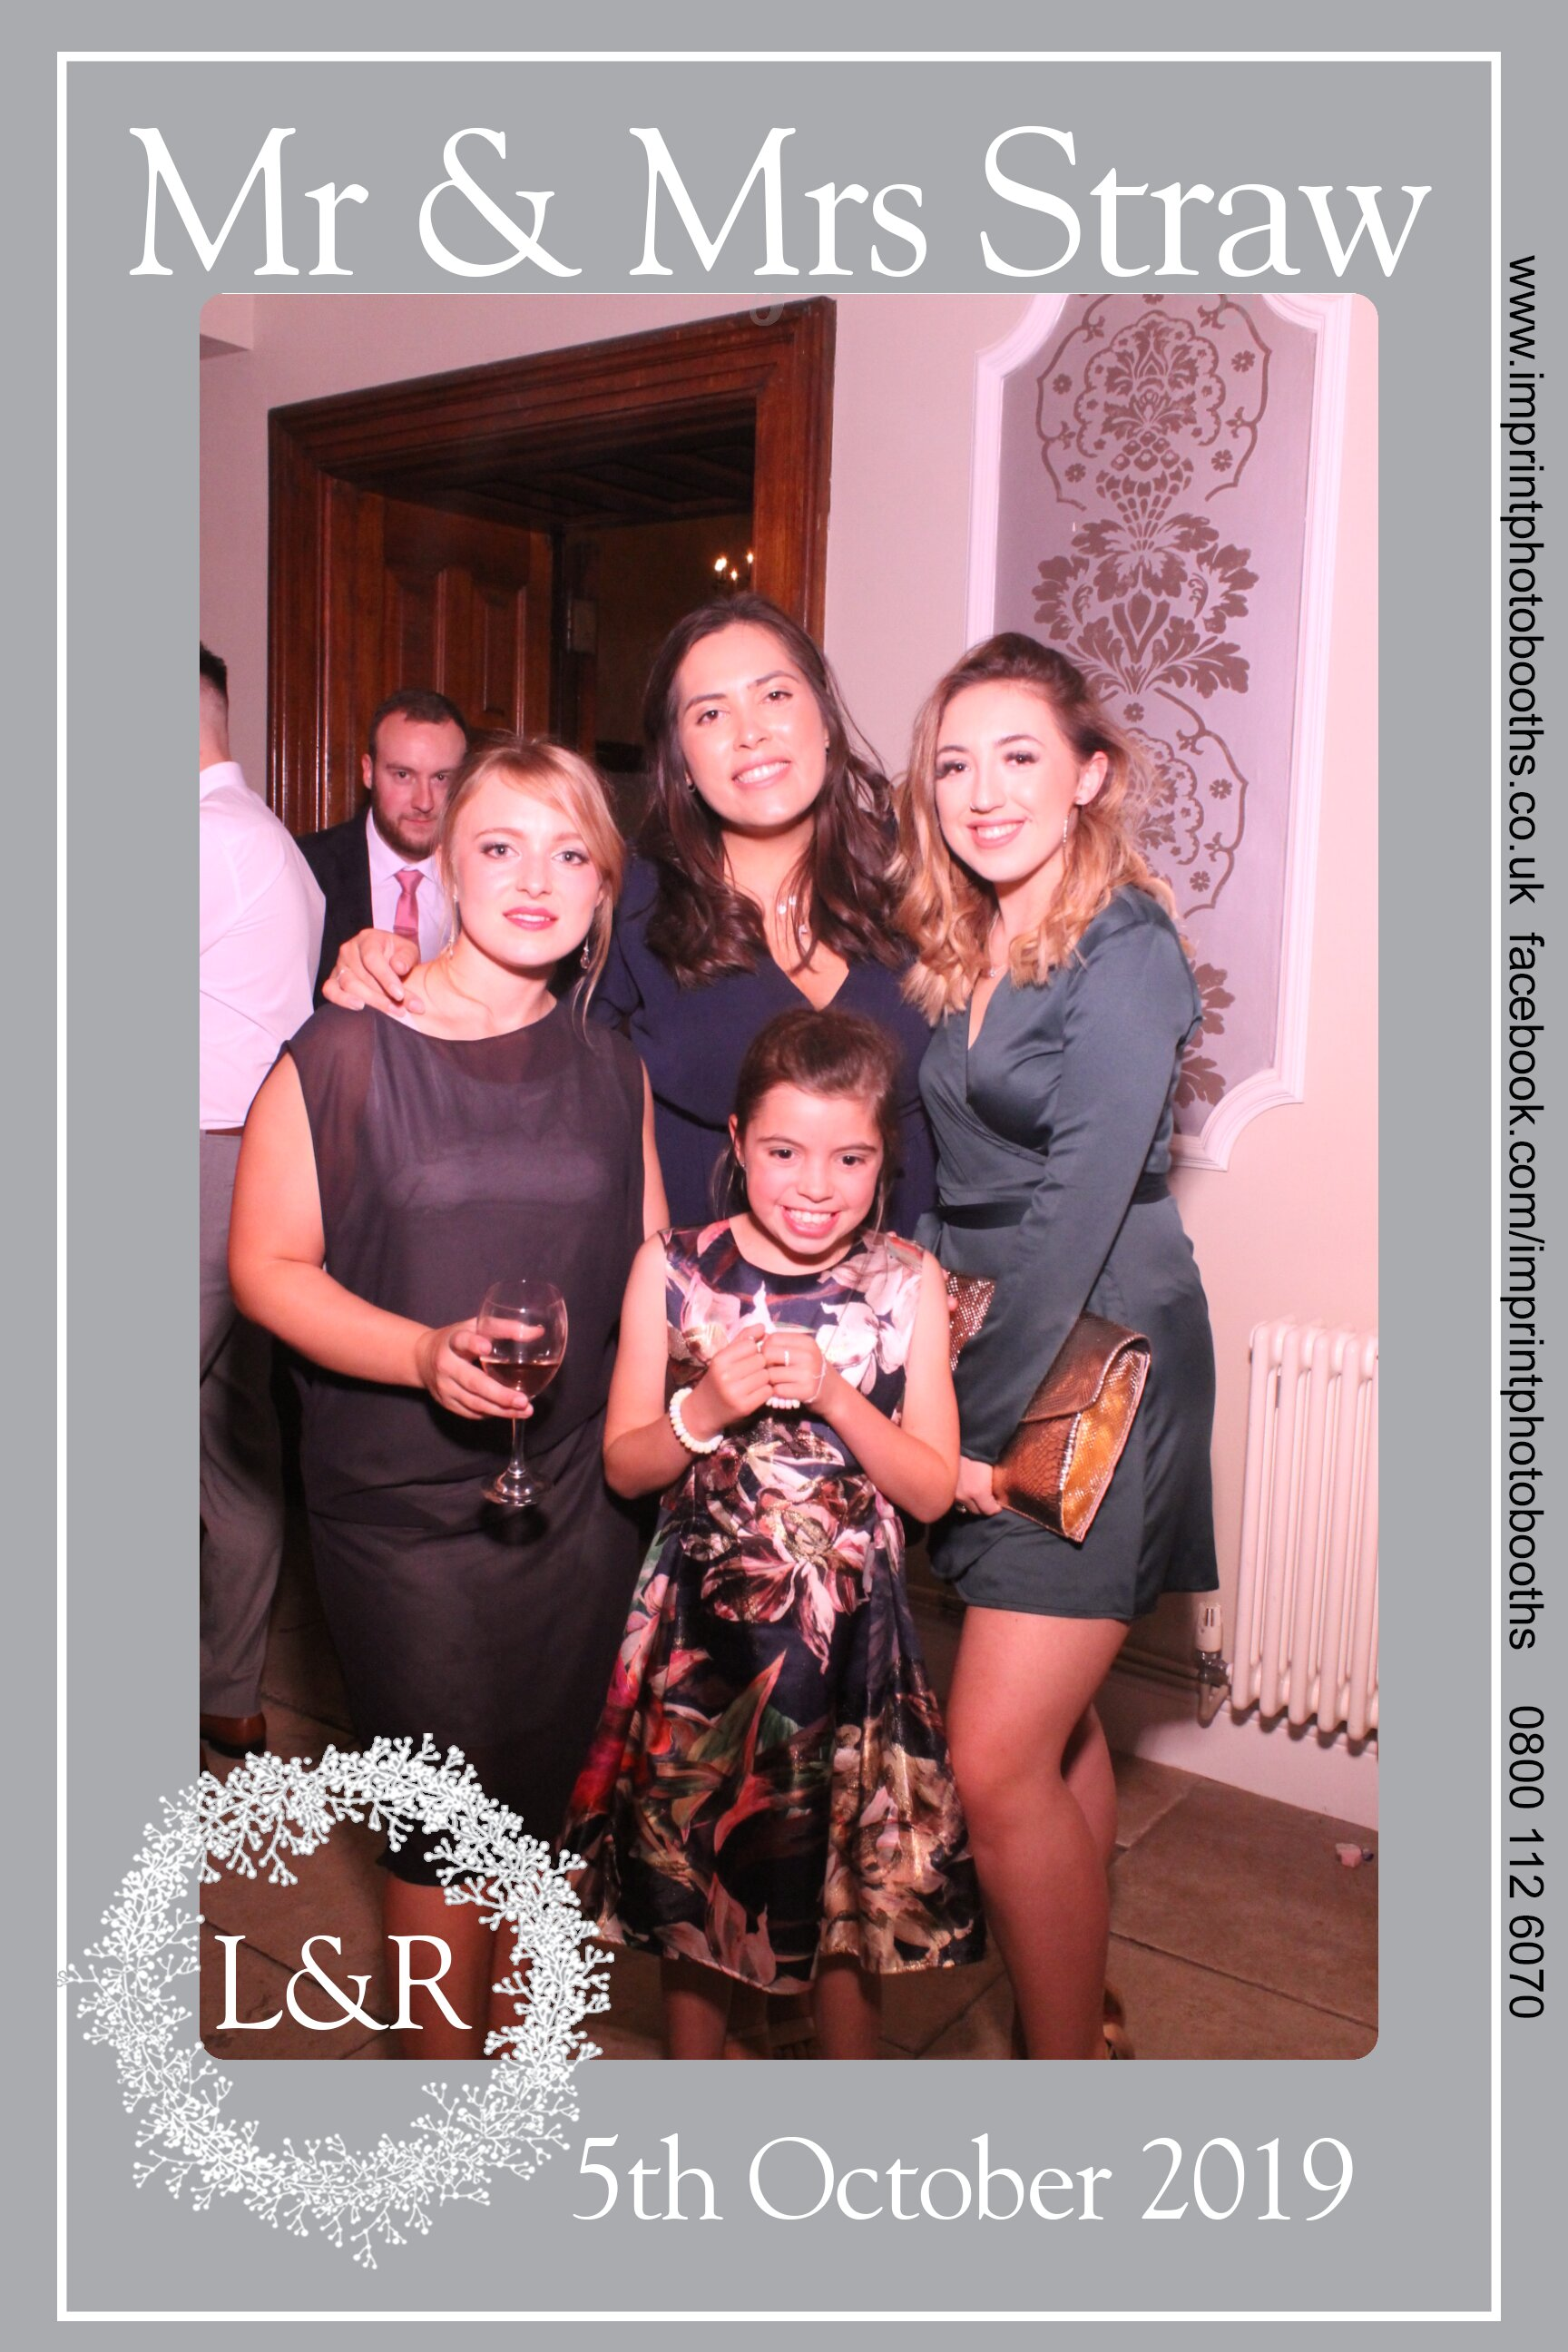 Lori and Ryan's Wedding   View more photos from the event at gallery.imprintphotobooths.co.uk/u/Imprint-Photobooths/Lori-and-Ryans-Wedding